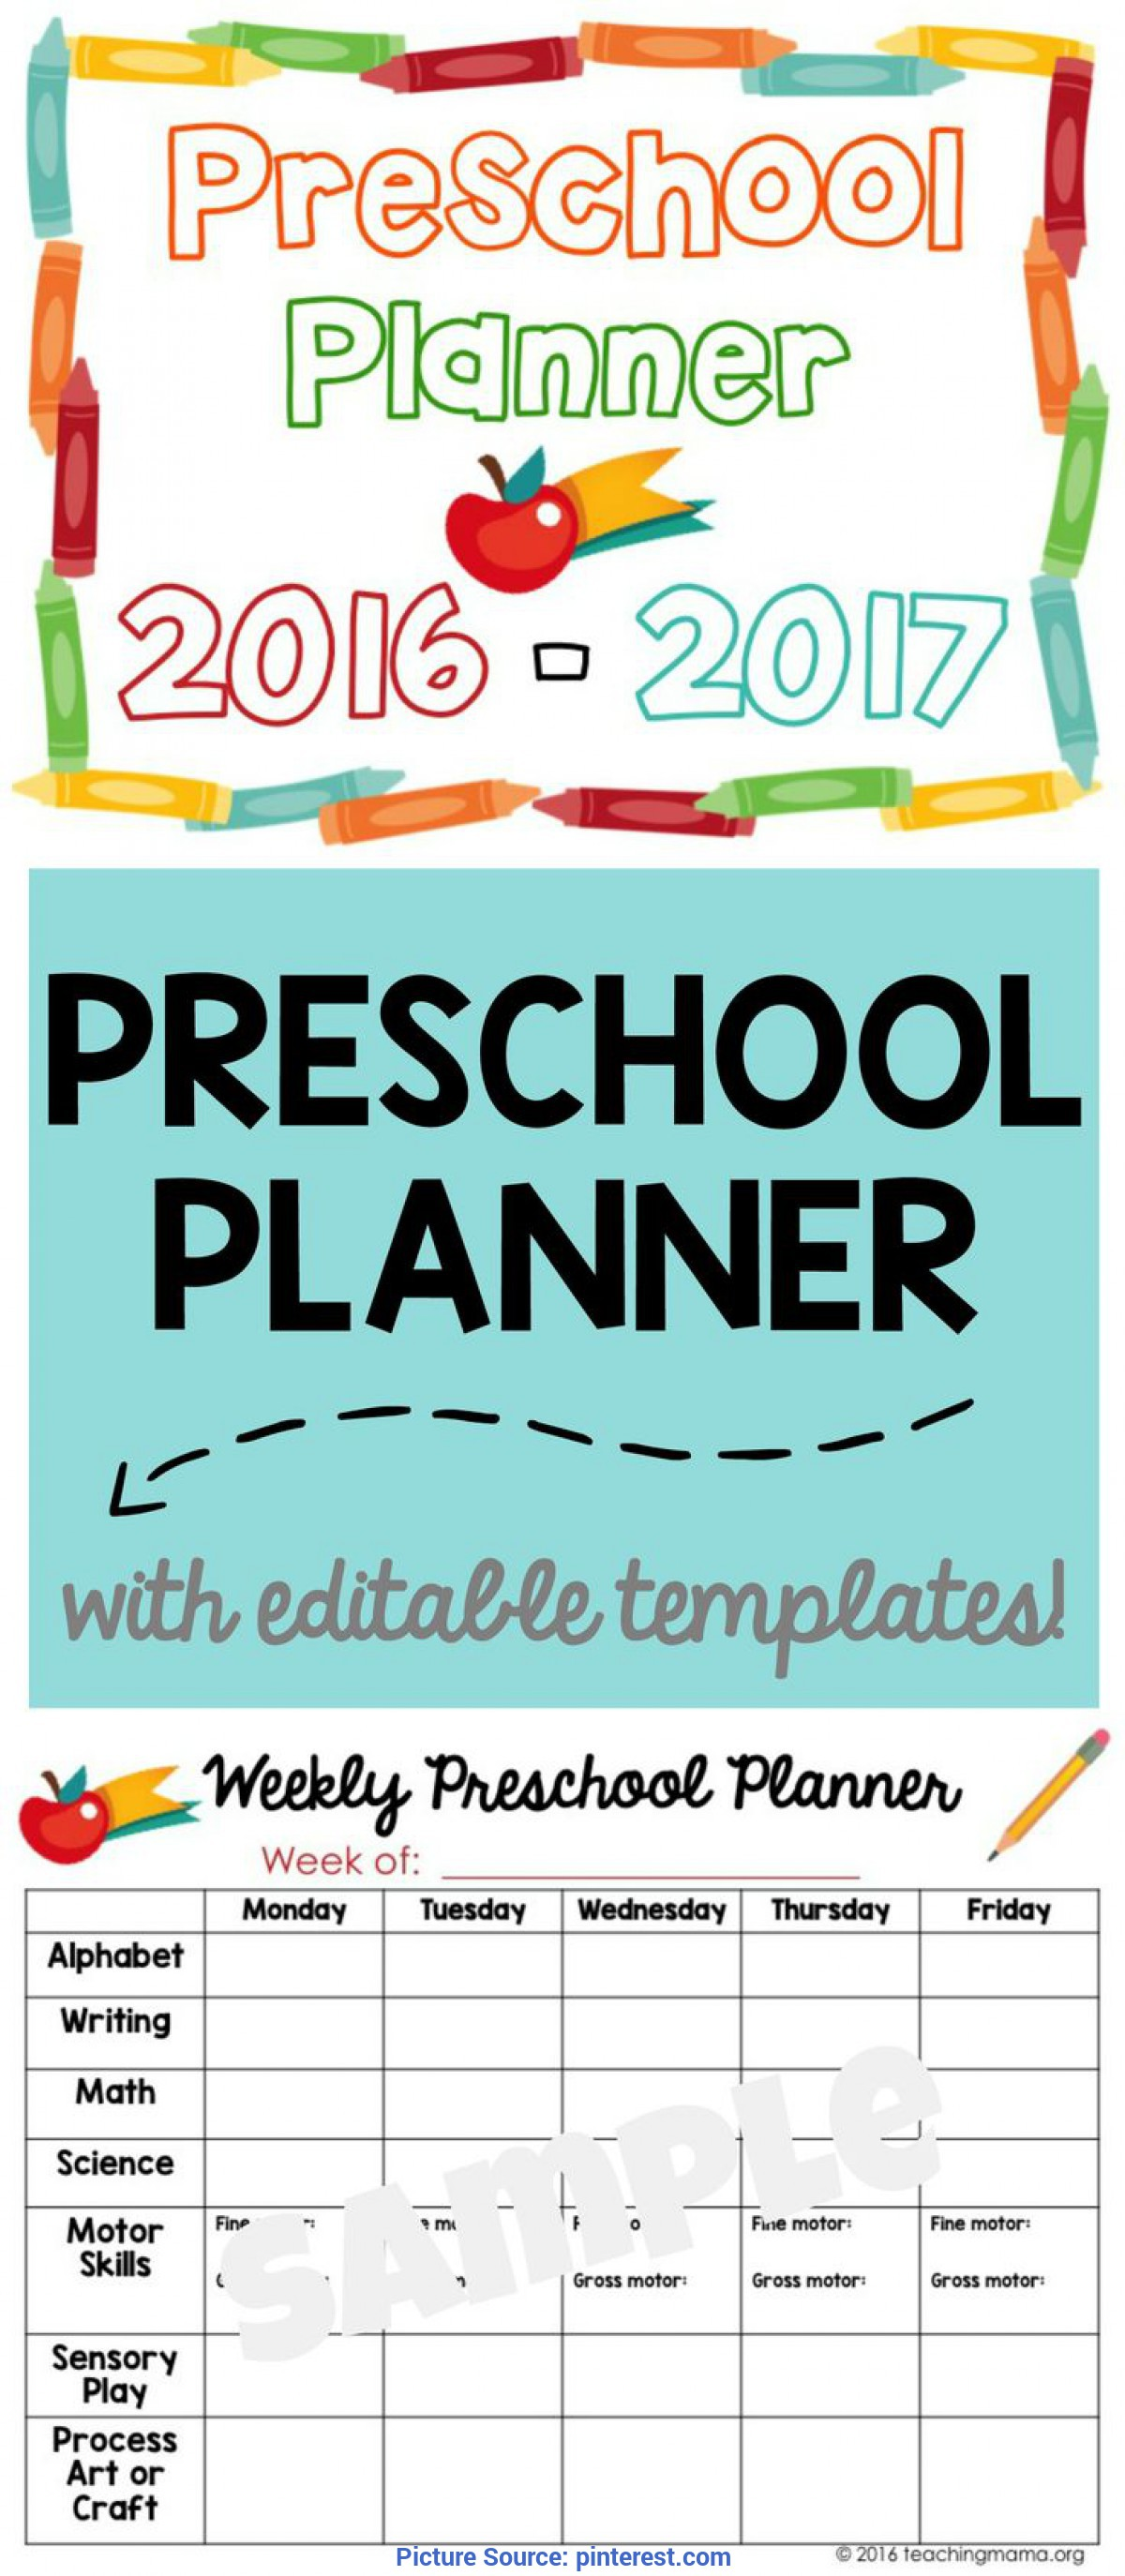 Typical Quick Preschool Lesson Plans Printable Preschool Planner - On Sale Now | Preschool Planne